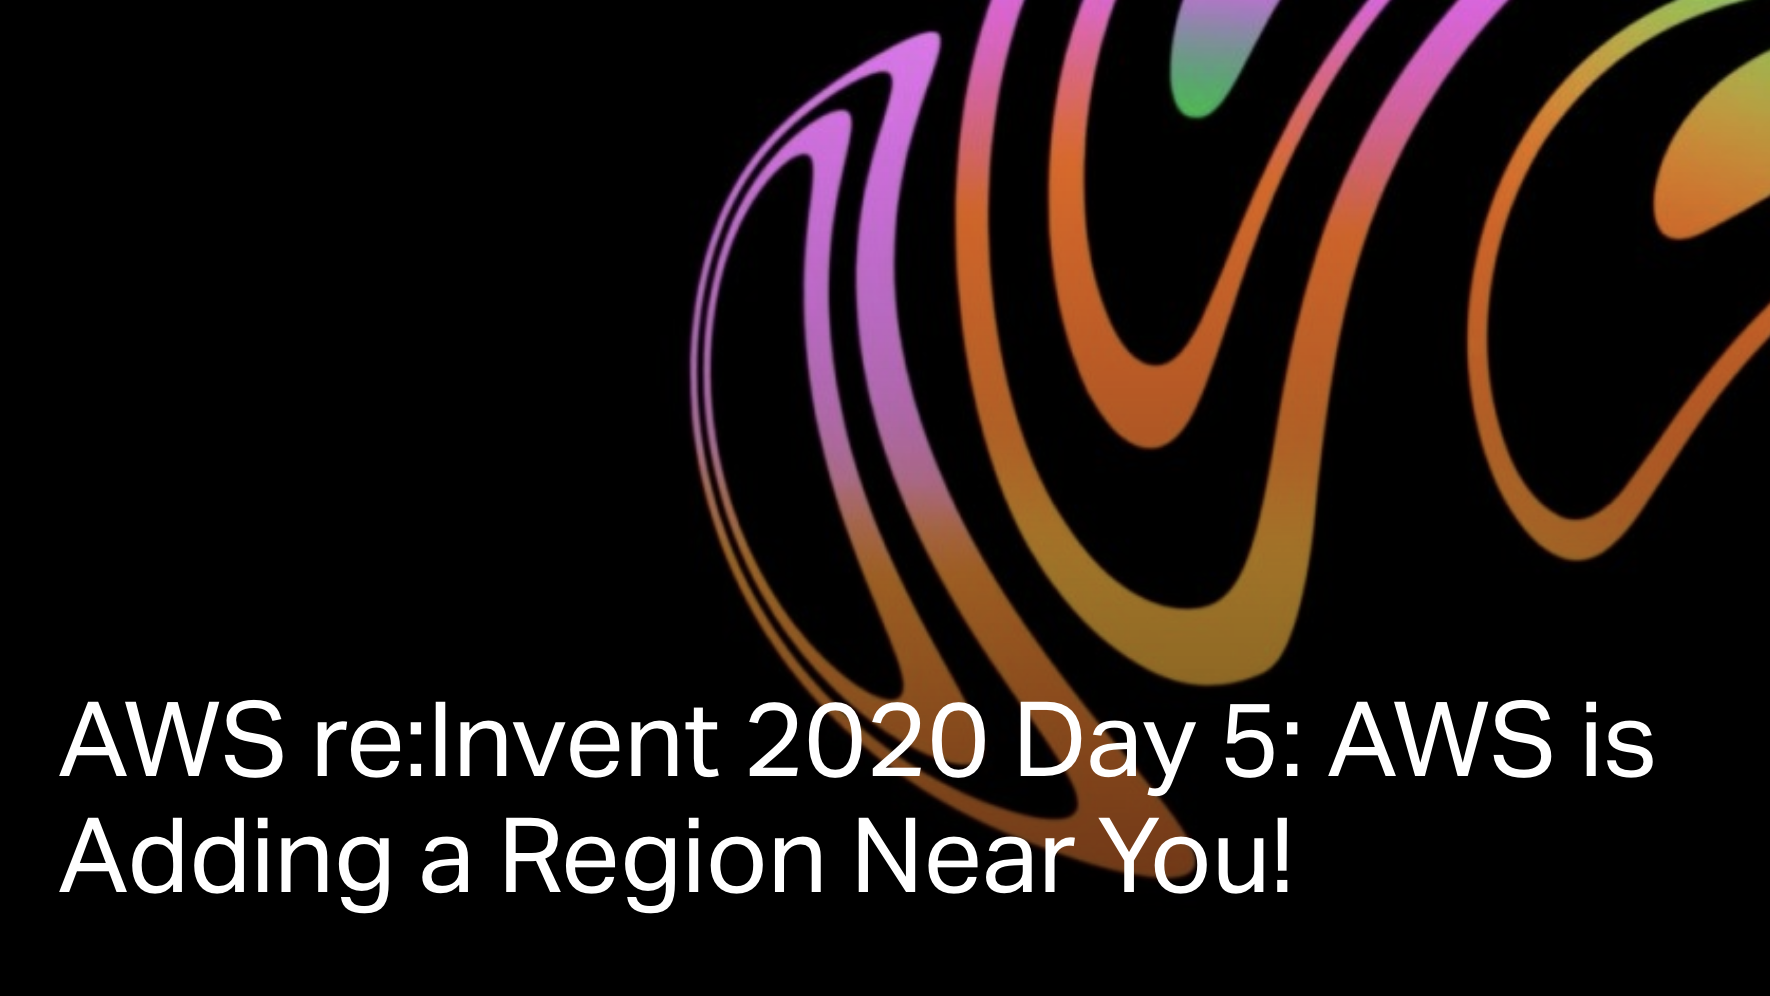 AWS re:Invent 2020 Day 5: AWS is Adding a Region Near You!